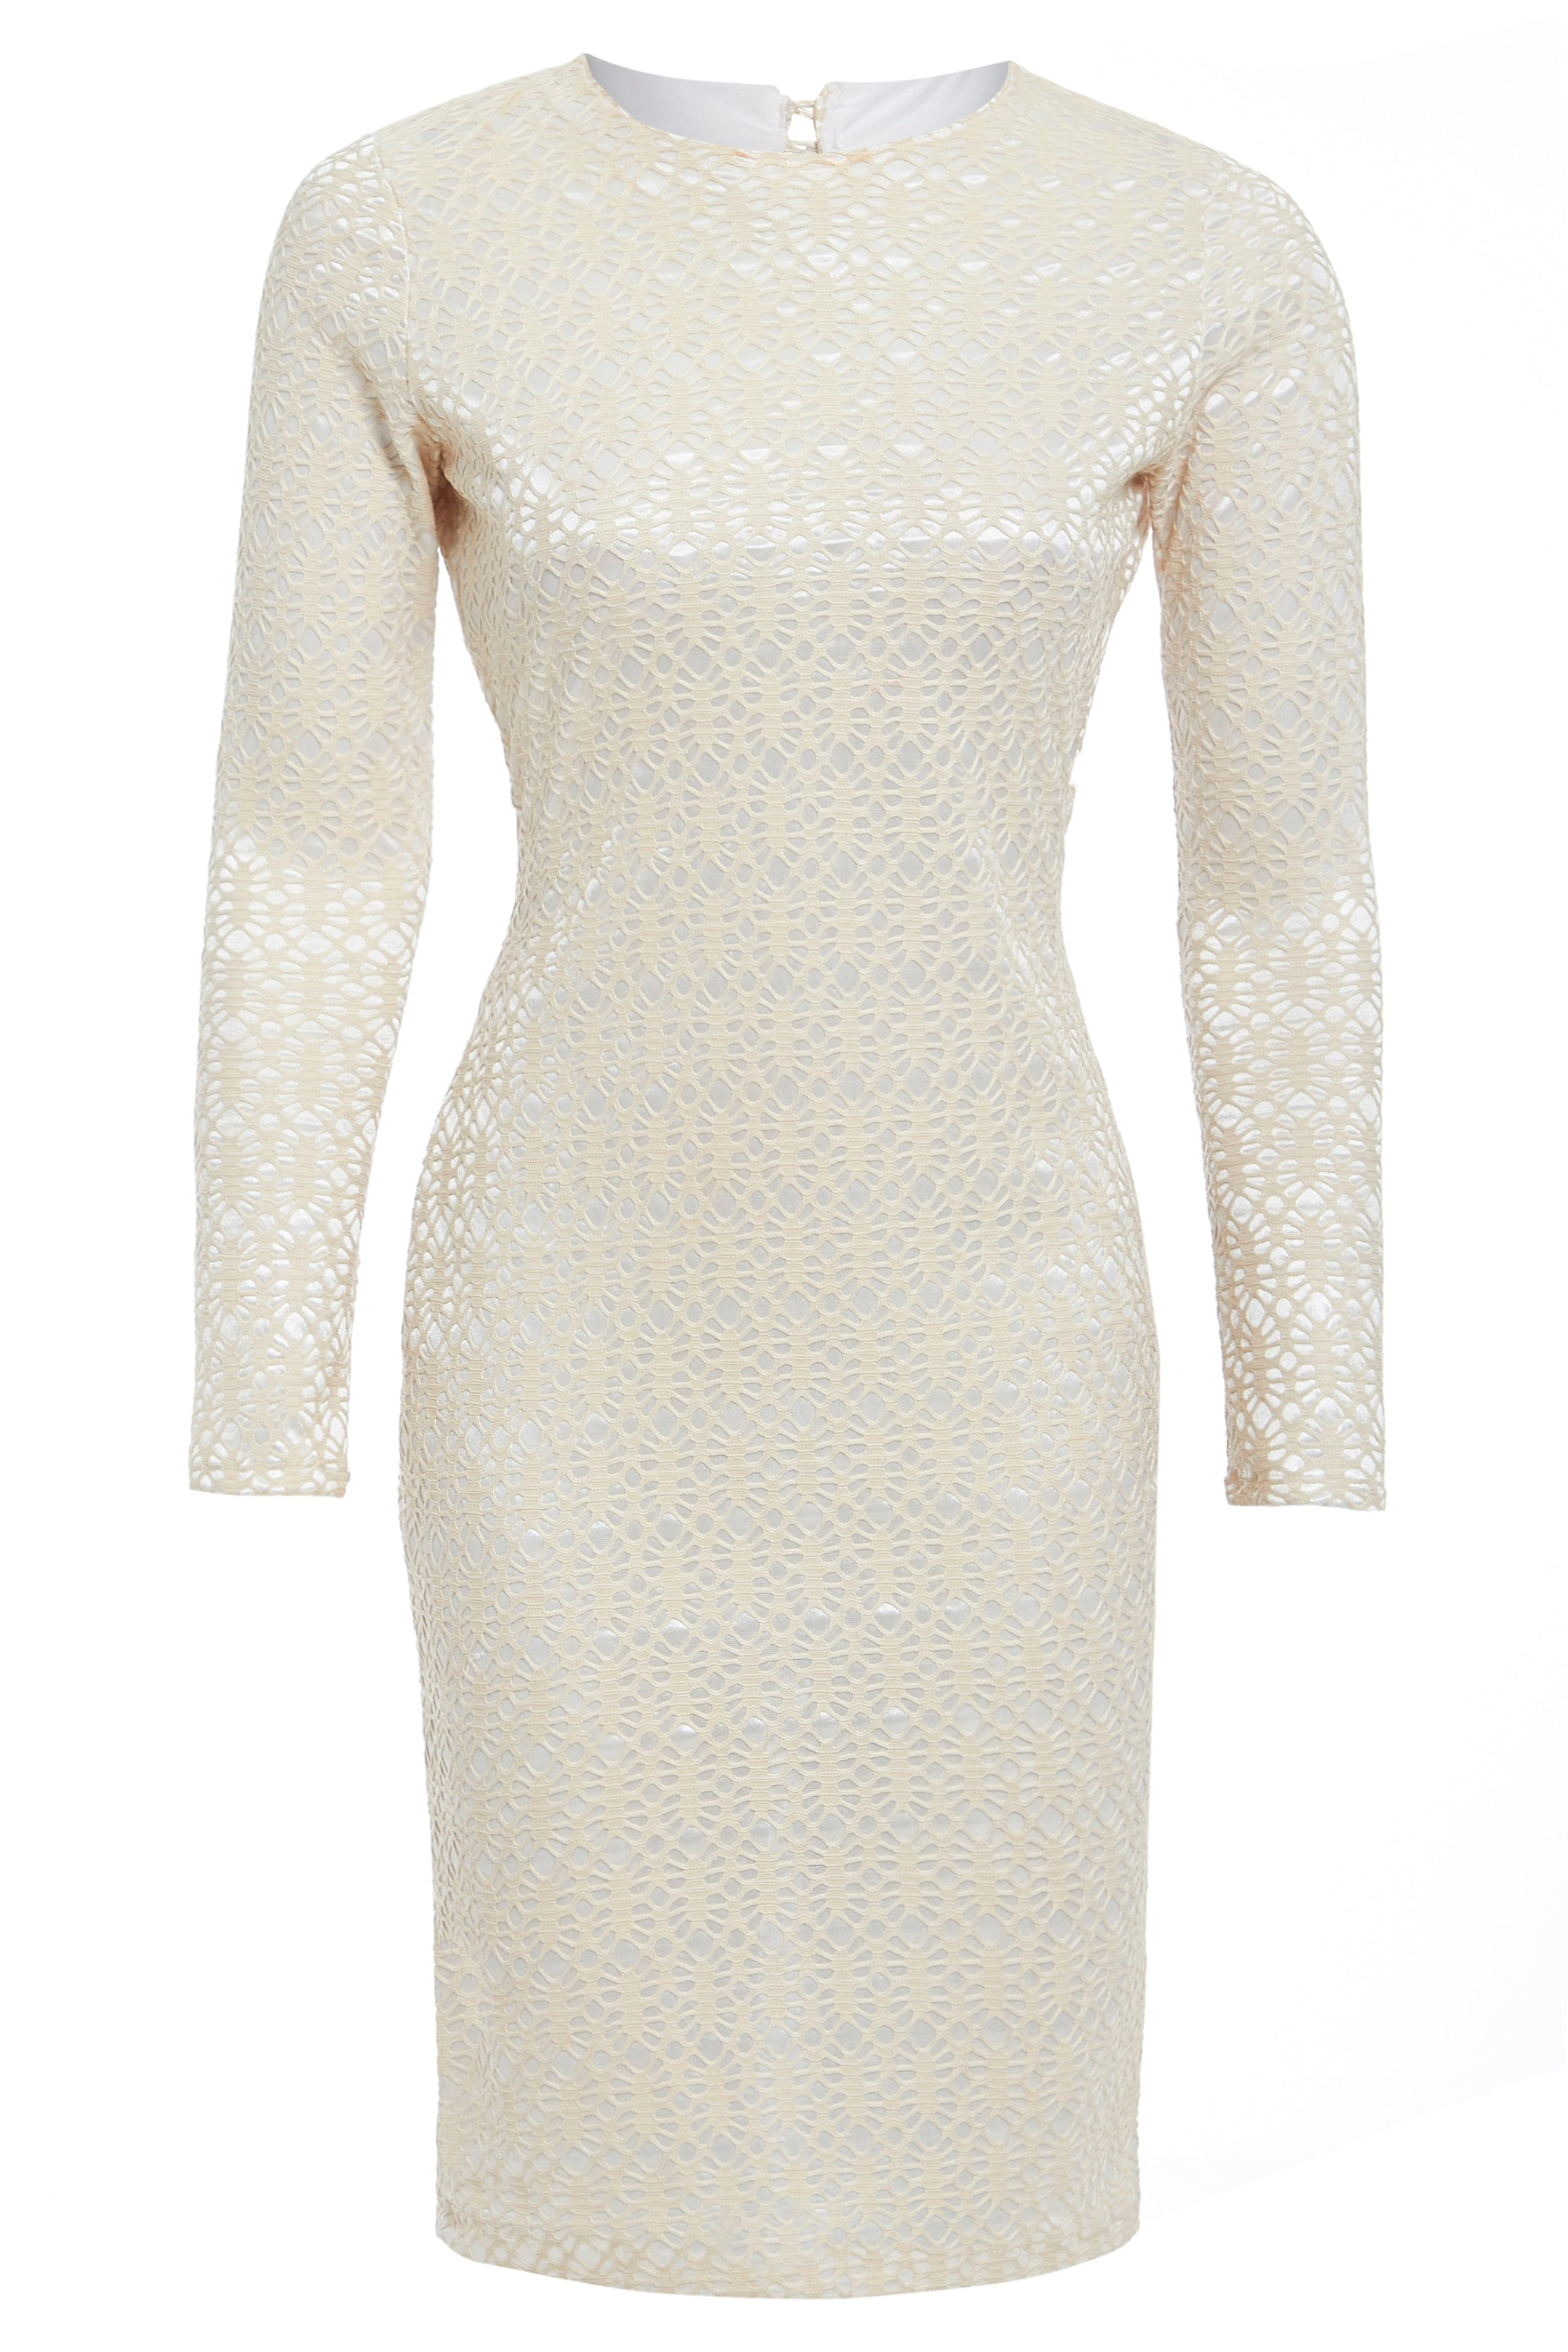 SARVIN ESSENTIALS - MORENA - Long Sleeve Backless Stone Lace Dress